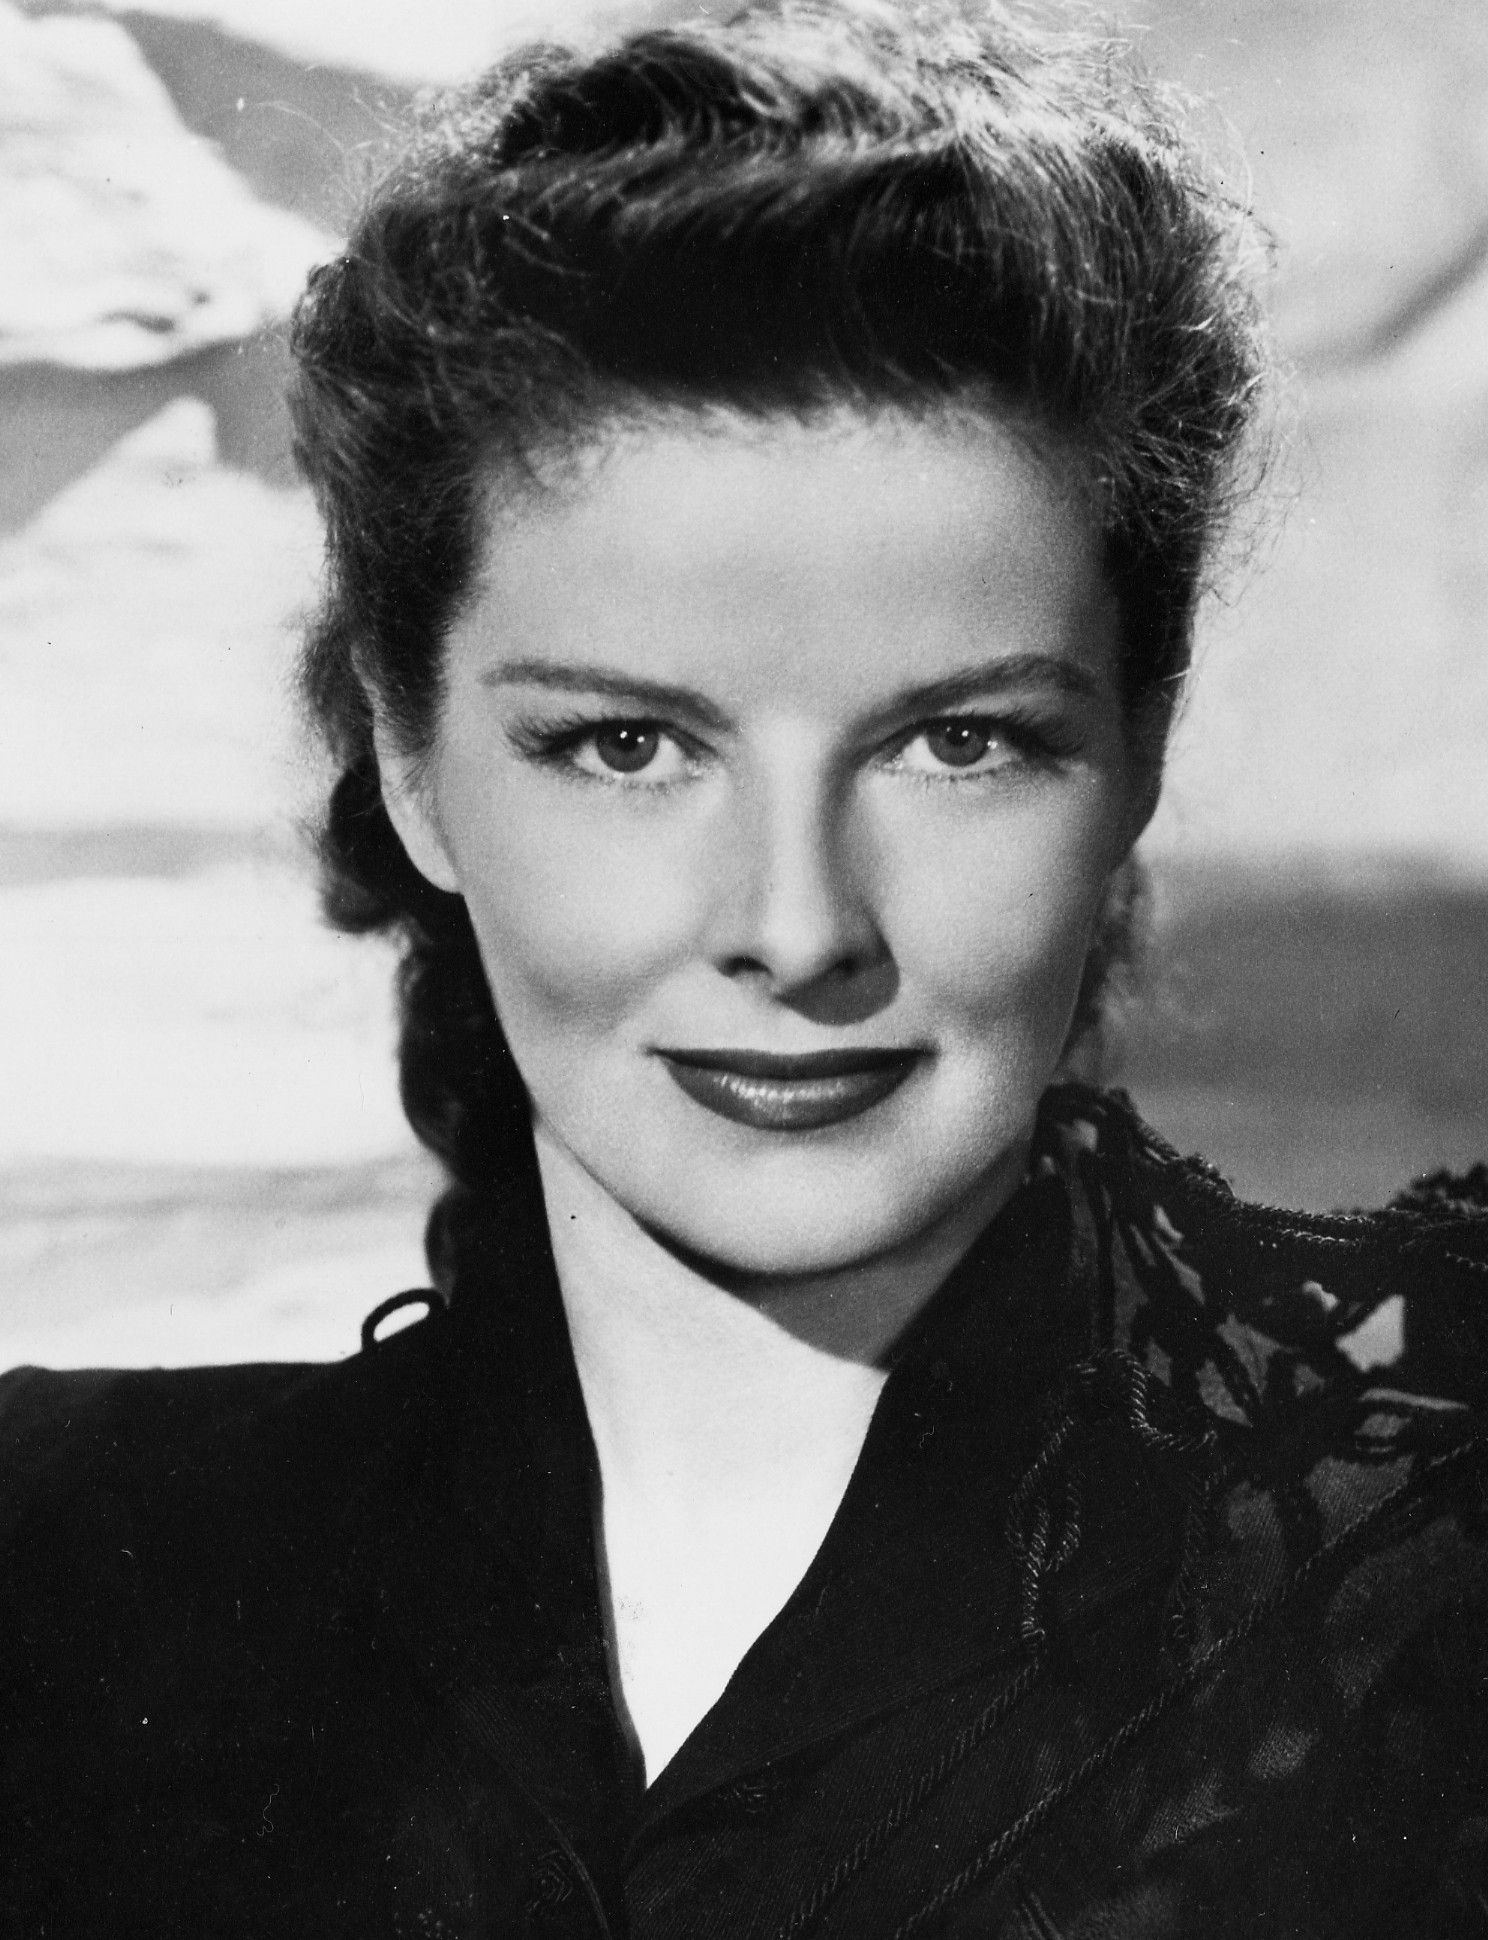 Katharine Hepburn, American actress, winner of 4 Academy Awards for Best  Actress (Bryn Mawr College) | Katherine hepburn, Katharine hepburn, Hepburn